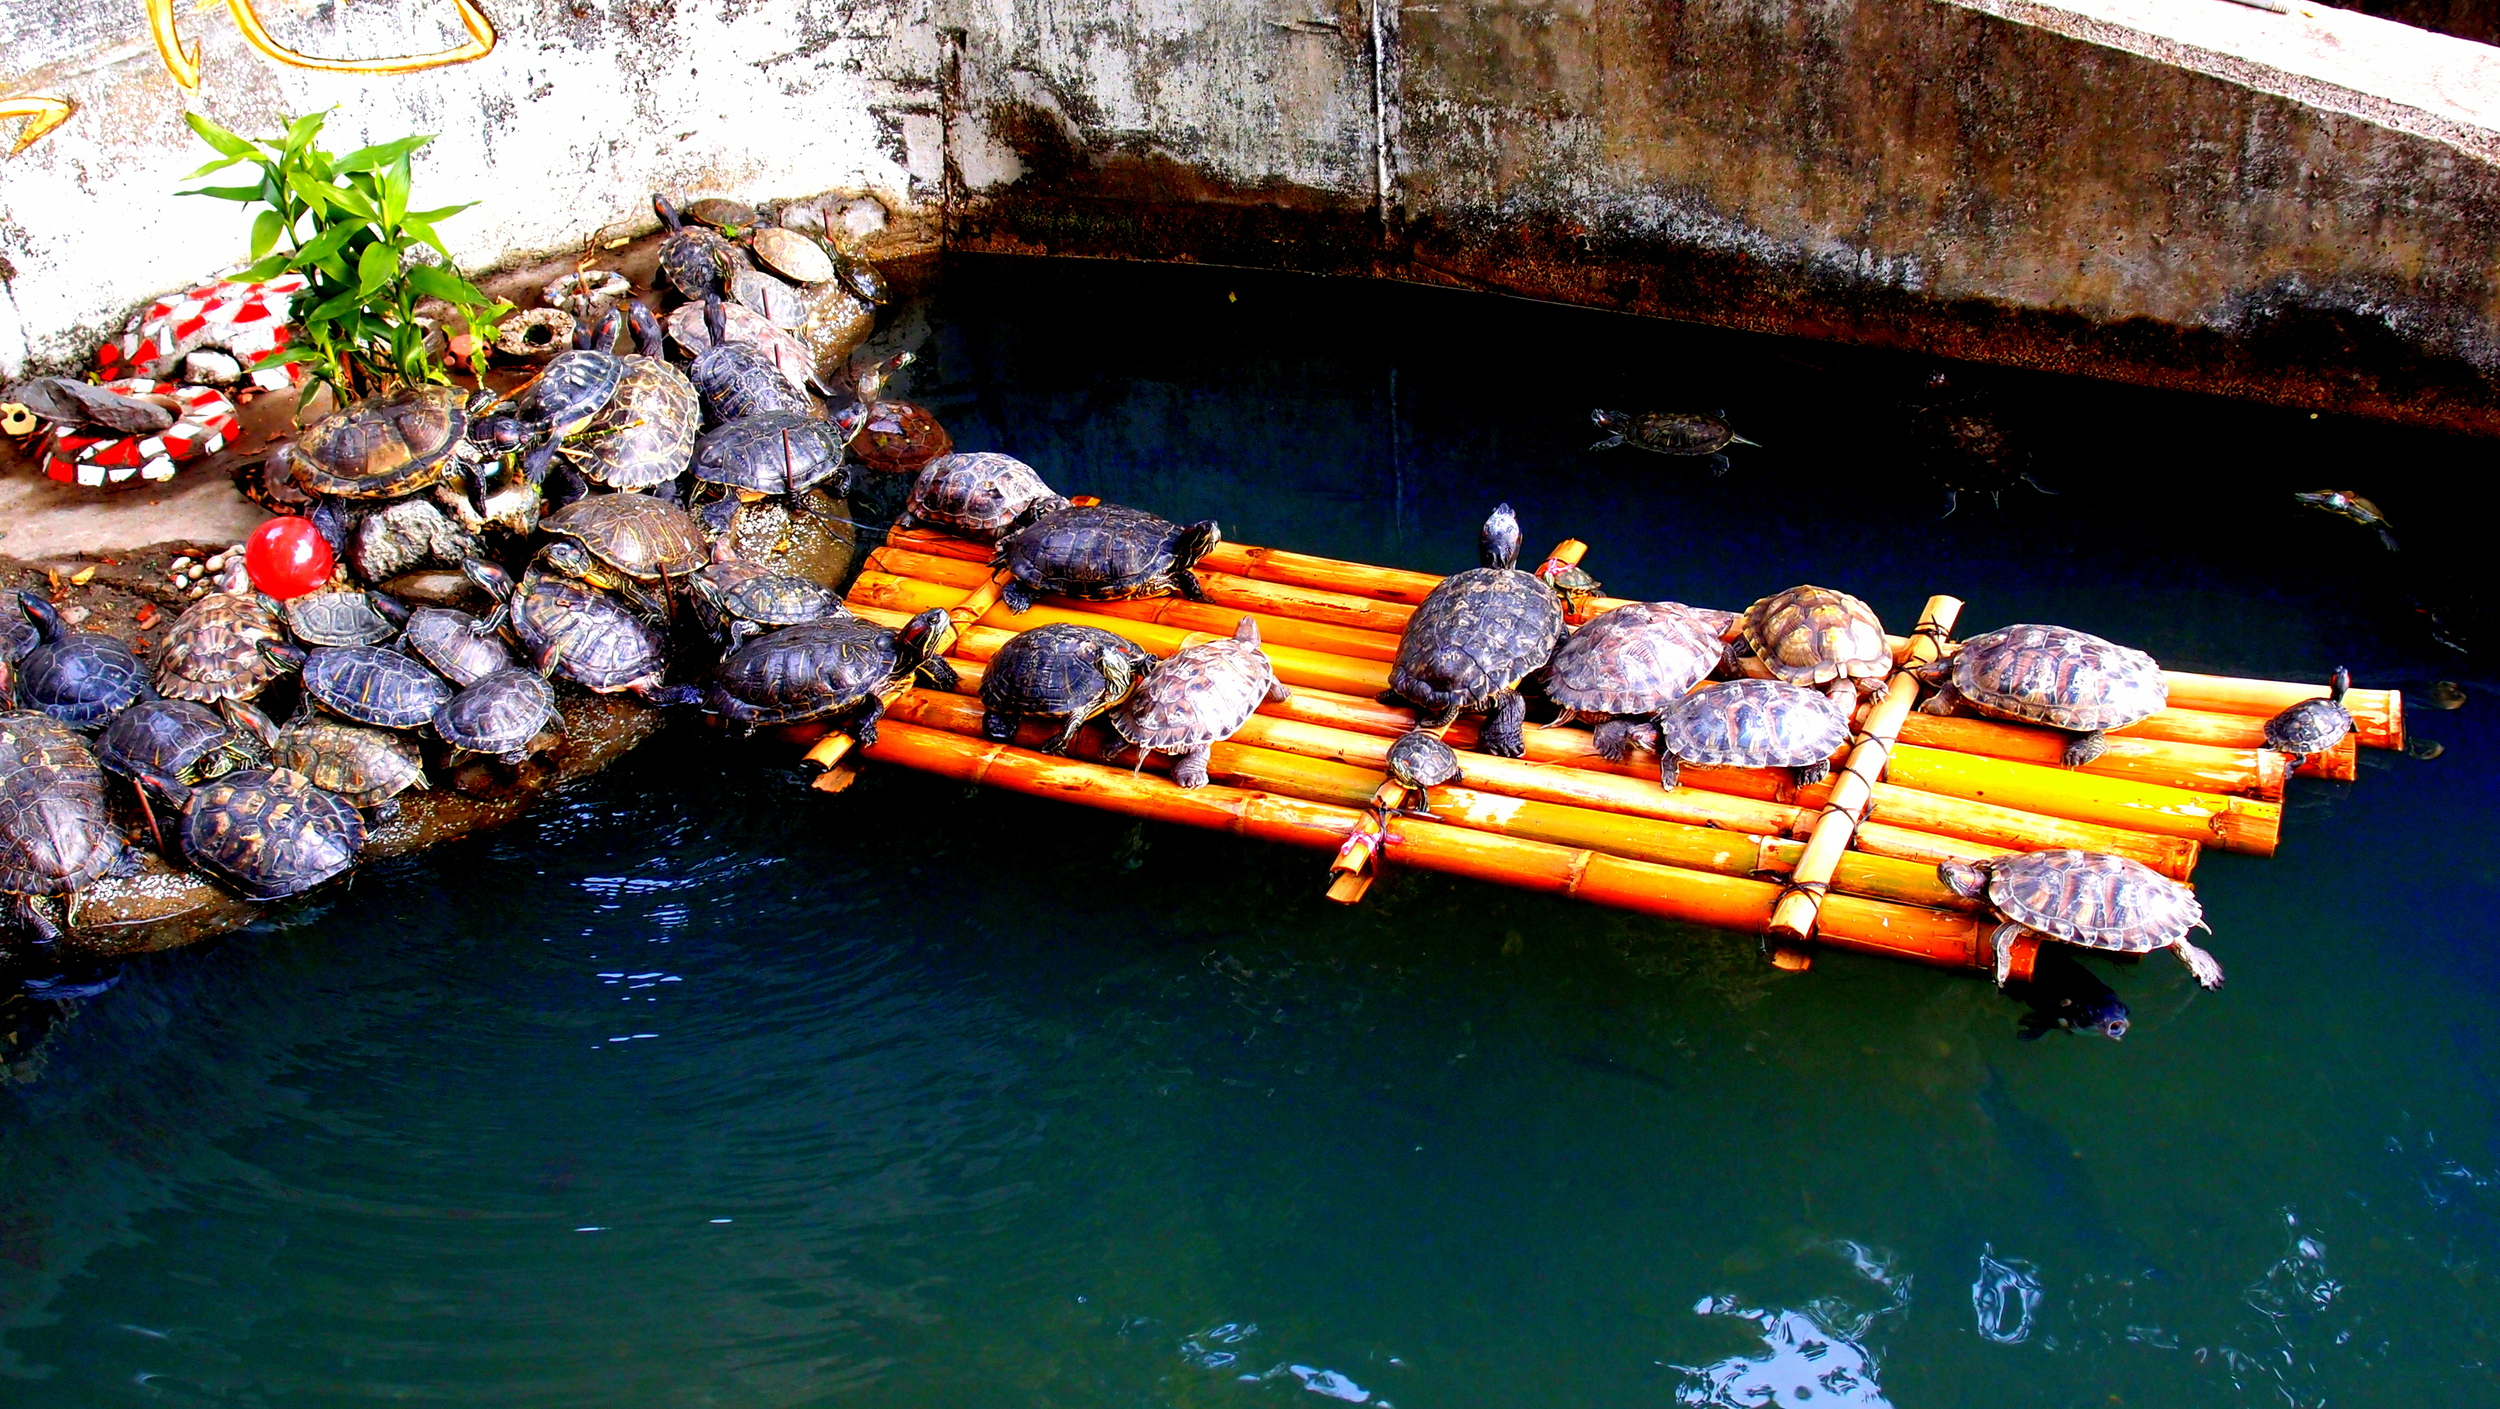 These turtles are so smart (at the 10,000 Buddha Monastery) that they have built an escape raft